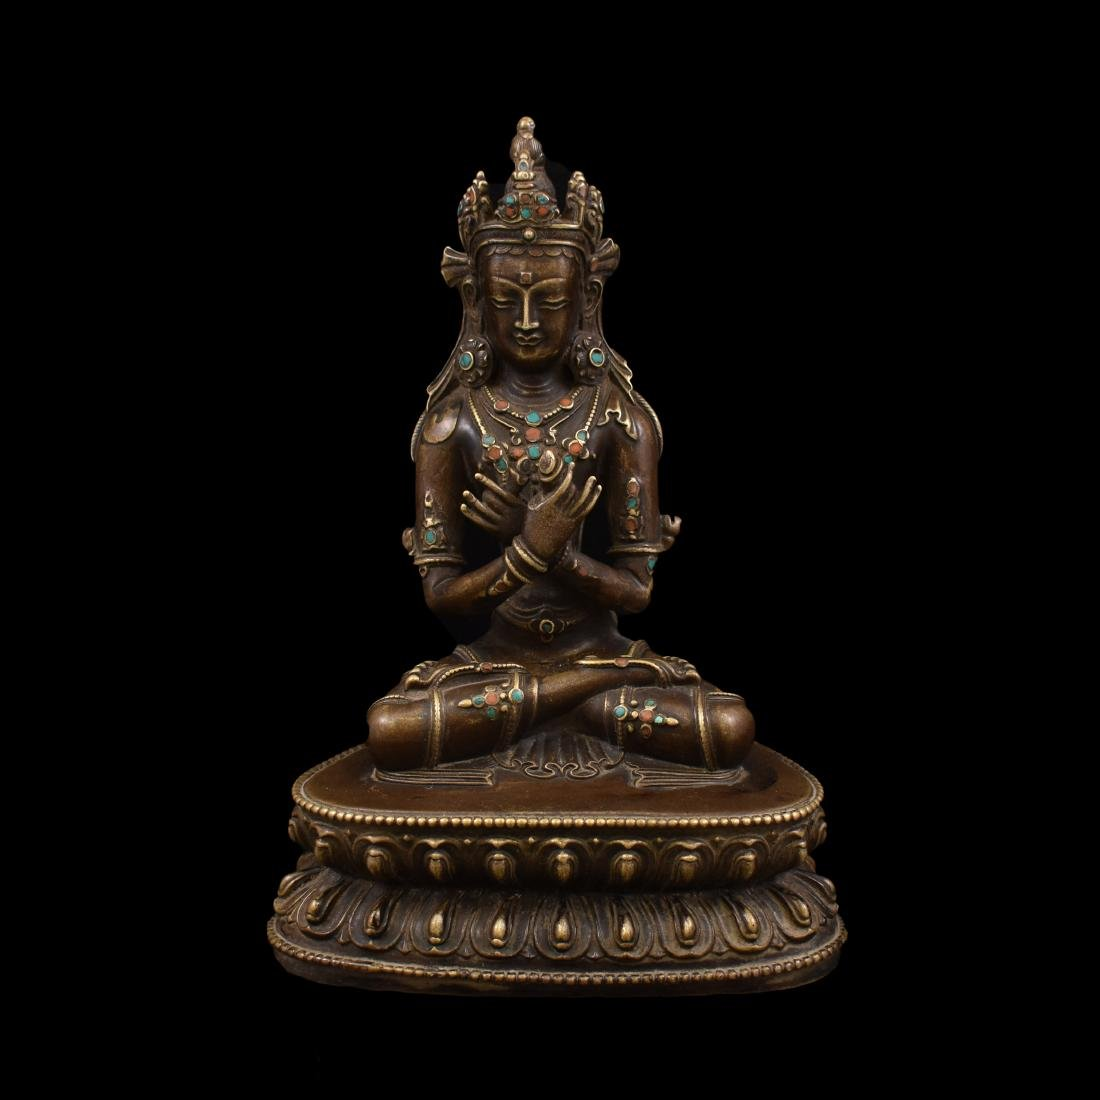 QING GILT BRONZE INLAID BUDDHA OF VAJRADHARA